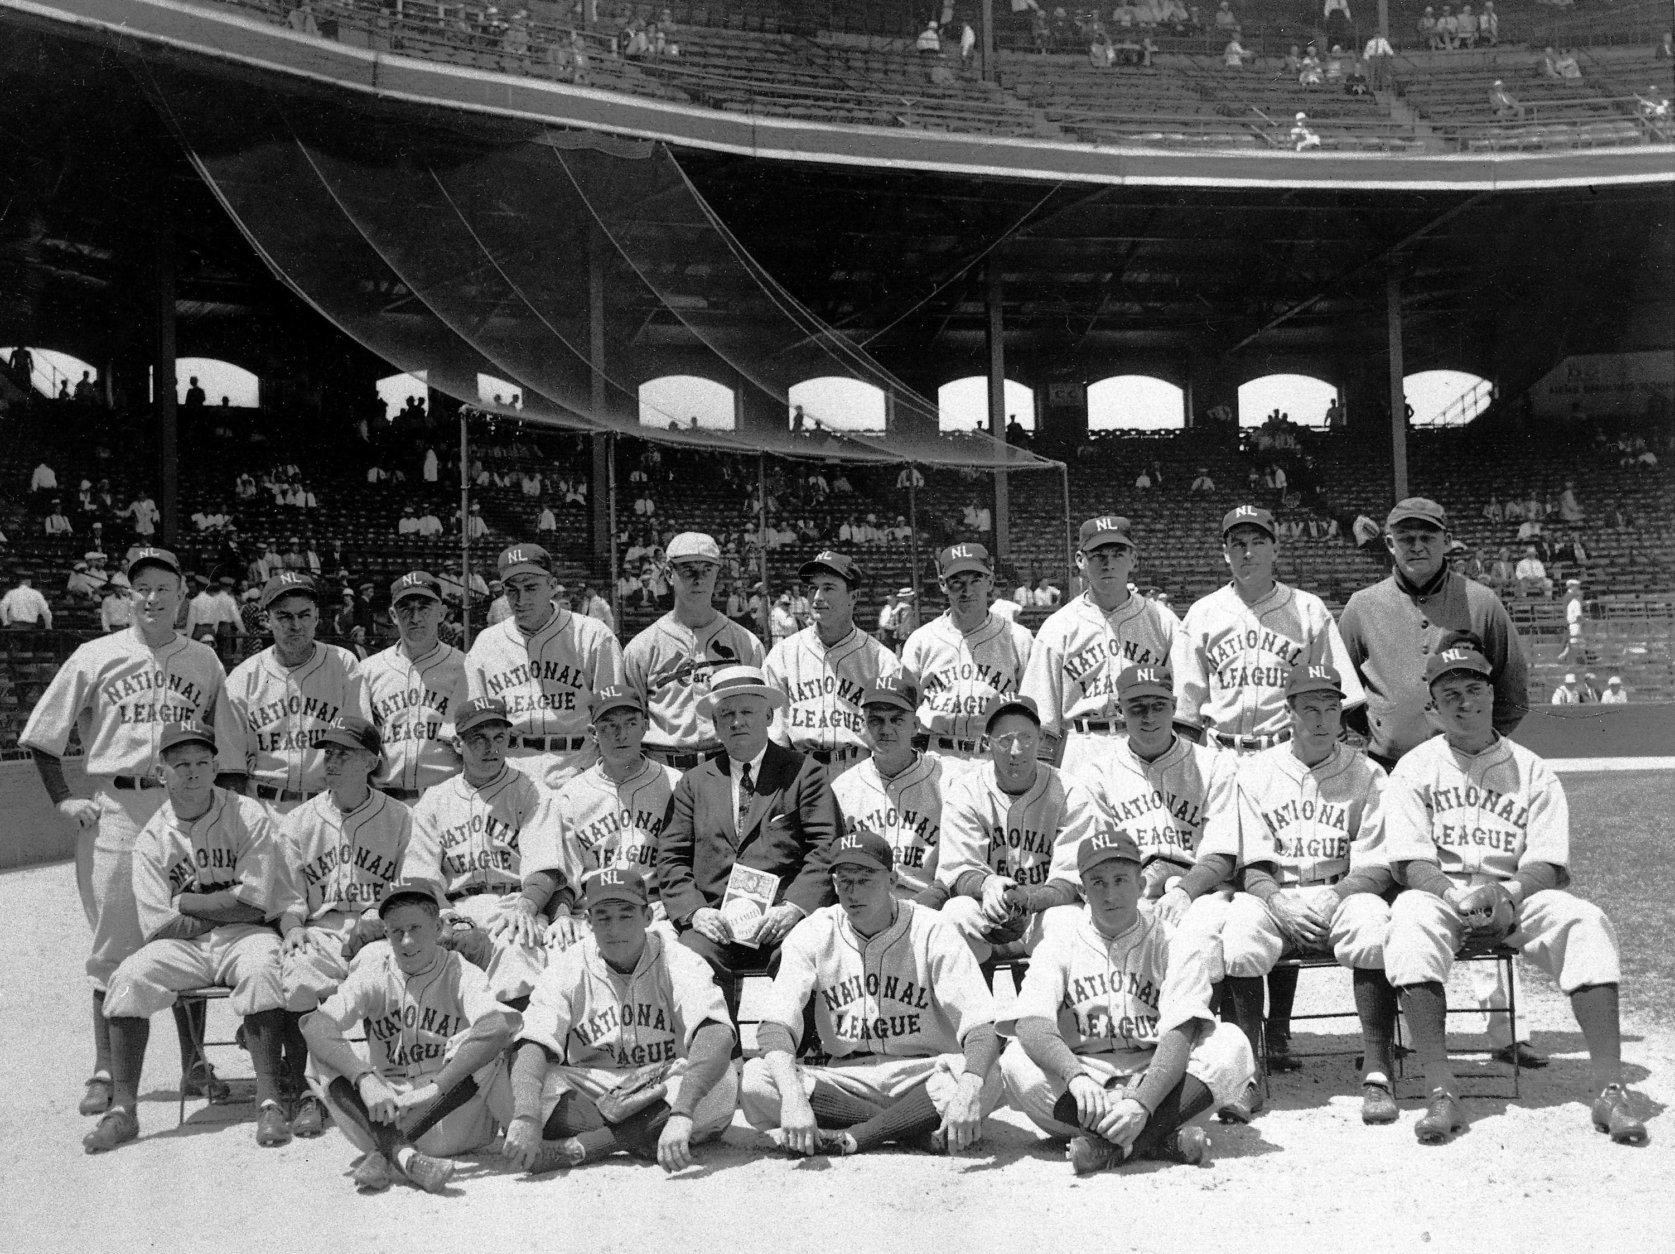 The National League team poses before the first major league All-Star Game in Chicago, Ill., on July 6, 1933.  The American League won 4-2.  Front row, from left: bat boy Hasbrook, Pepper Martin, Lon Warneke, Tony Cuccinello.  Middle row, from left: Bill Hallahan, Dick Bartell, Bill Terry, Bill McKechnie, John McGraw, Max Carey, Chick Hafey, Chuck Klein, Lefty O'Doul, Wally Berger.  Back row, from left: Gabby Hartnett, Hack Wilson, Frankie Frisch, Carl Hubbell, Bill Walker, Paul Warner, Woody English, Hal Schumacher, Pie Traynor, trainer Andy Lotshaw.  (AP Photo)